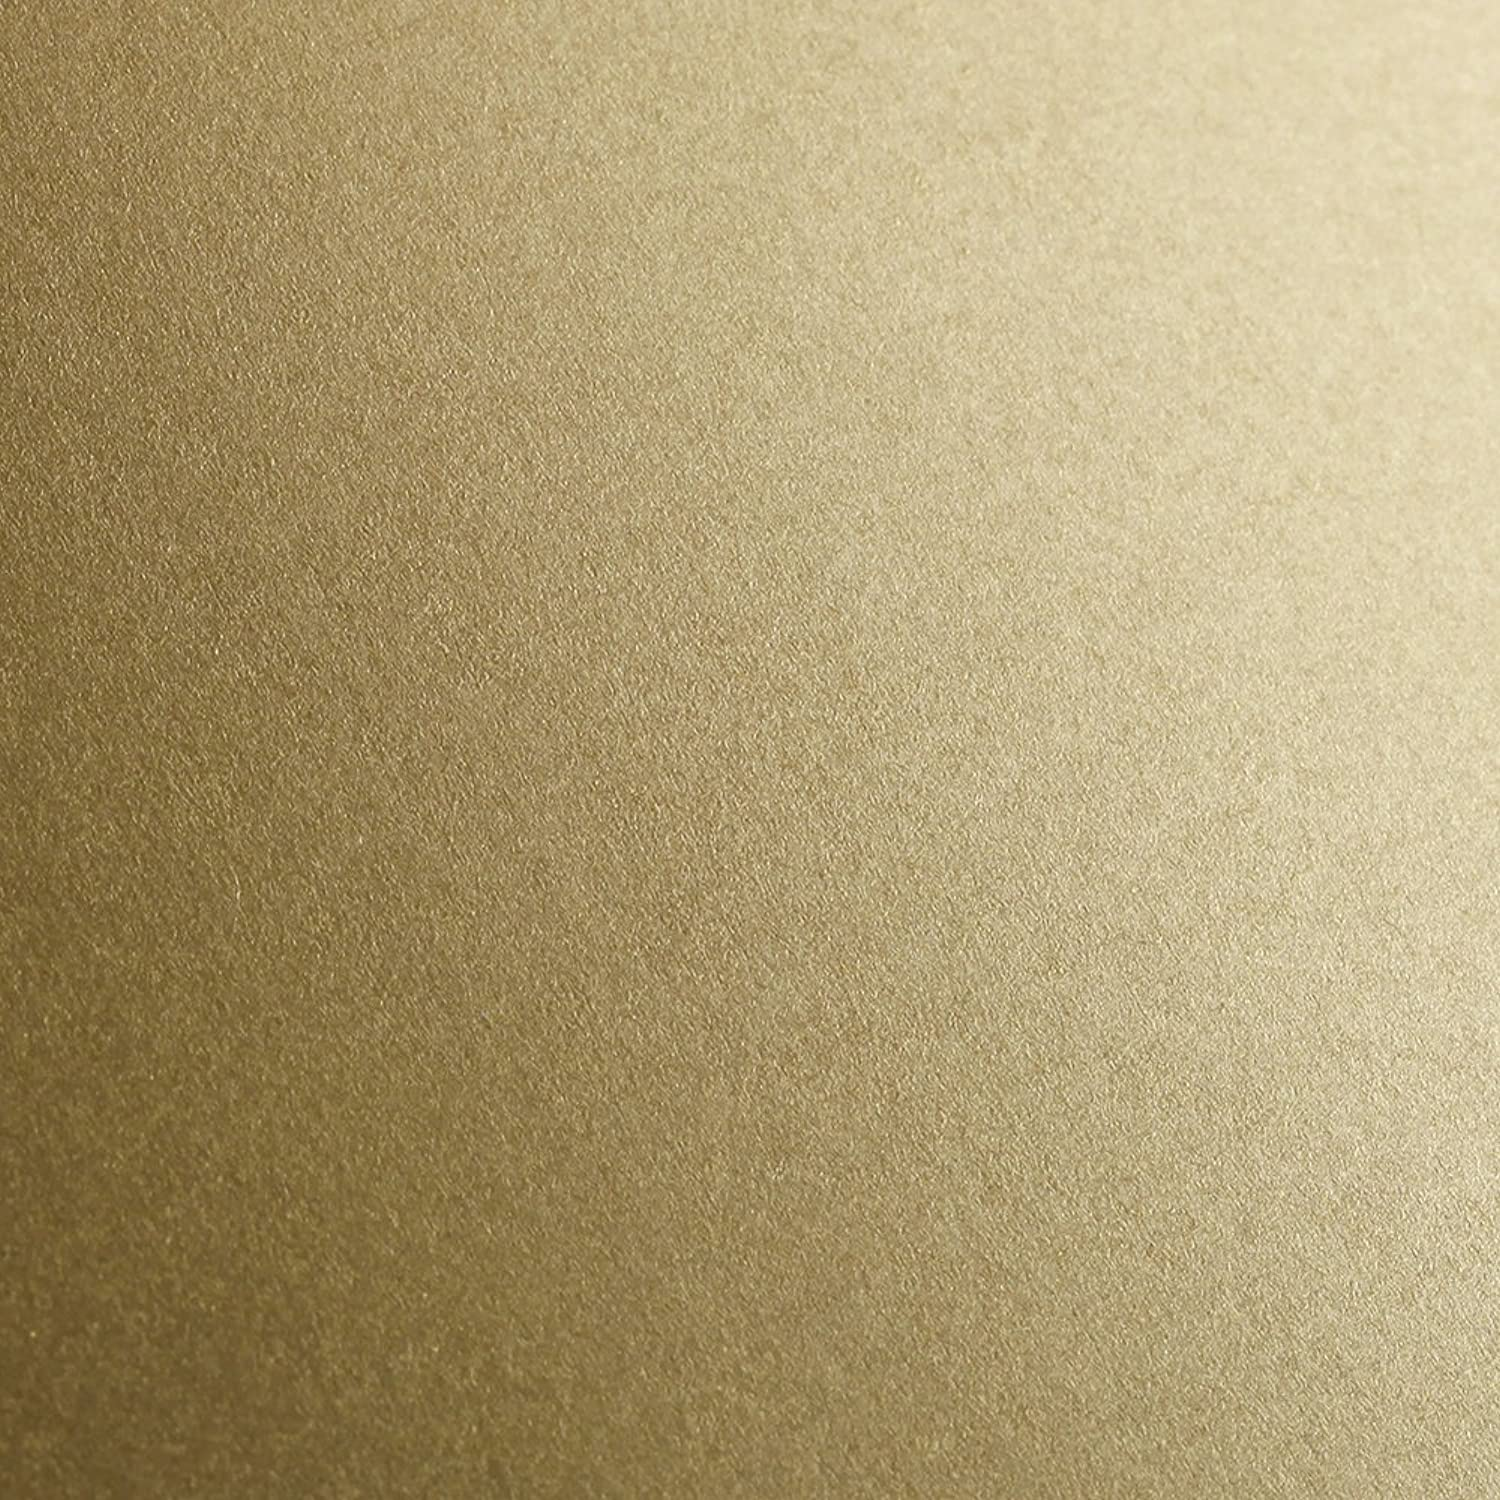 Clairefontaine Maya Coloured Smooth Drawing Paper, 270 g, 50 x 70 cm - Gold, Pack of 25 Sheets